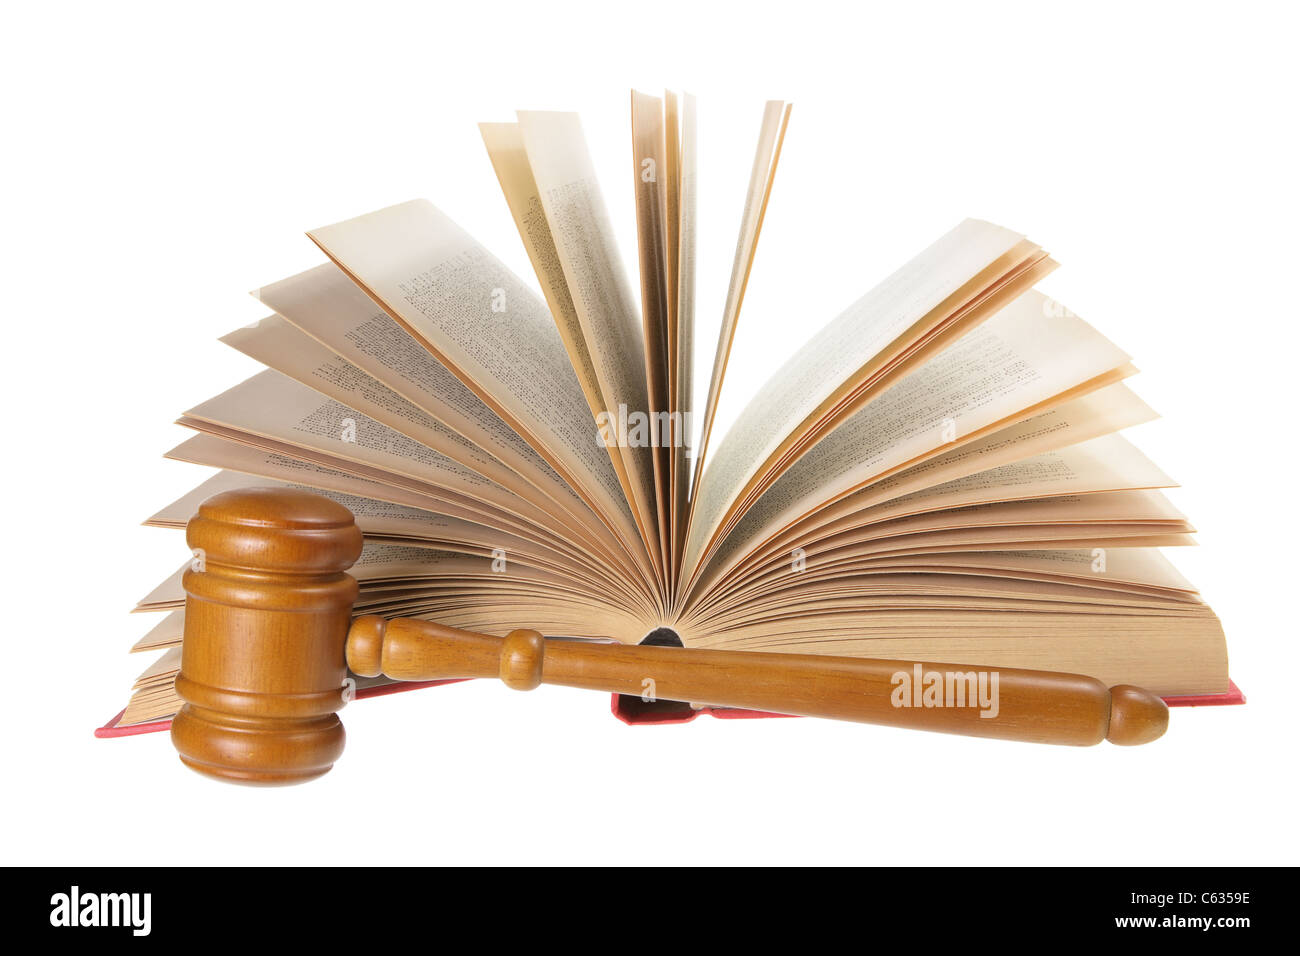 Gavel and Book - Stock Image